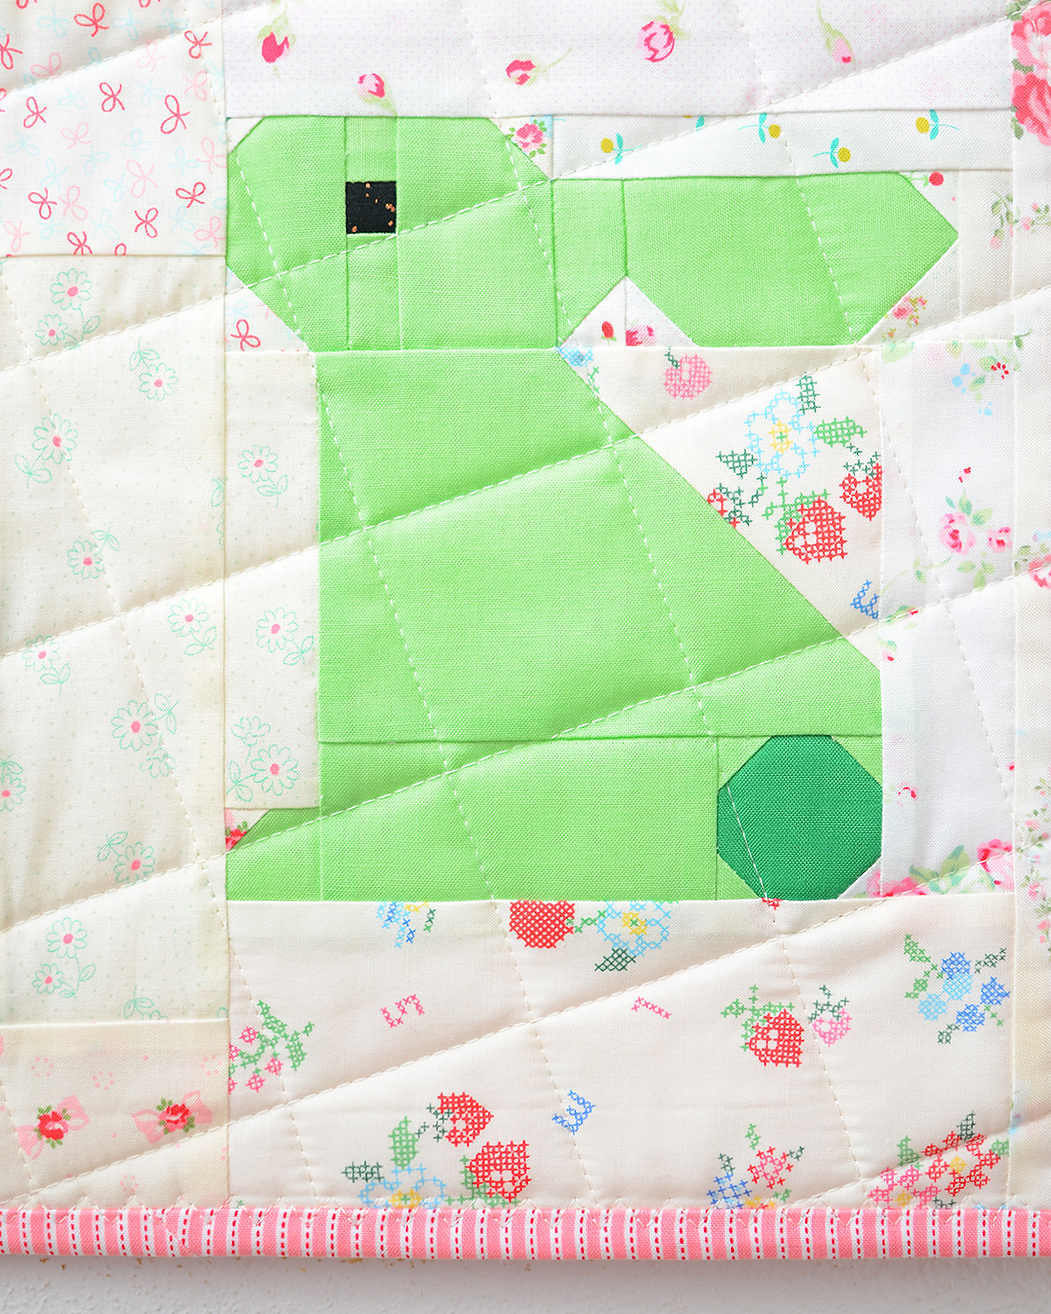 Bunny Easter quilt pattern - green bunny